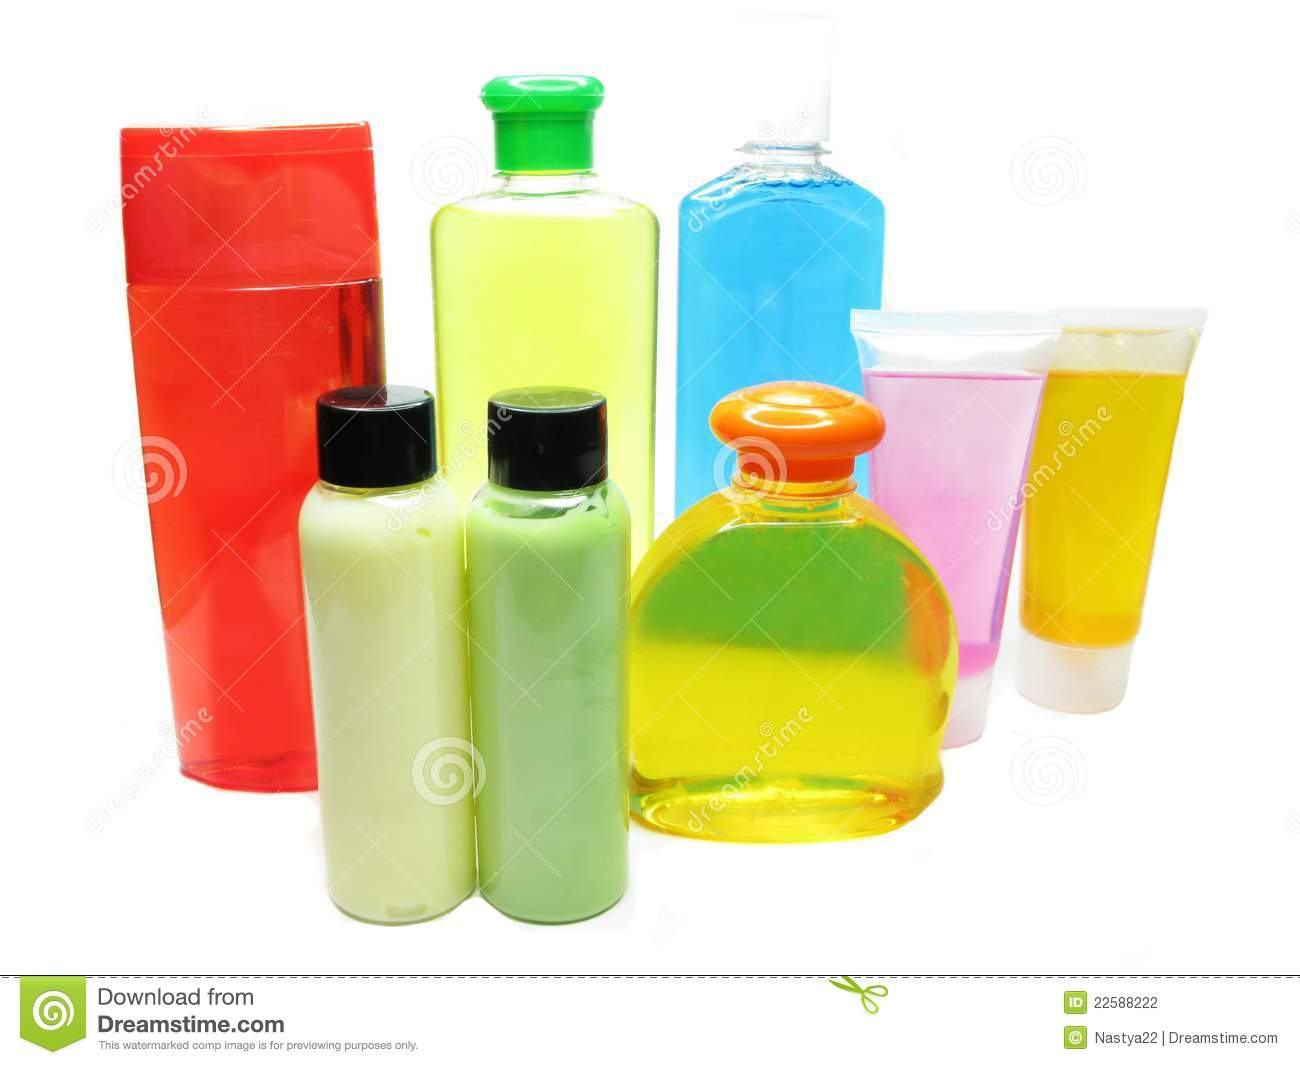 Shower set shampoo shower gel body creme bottles